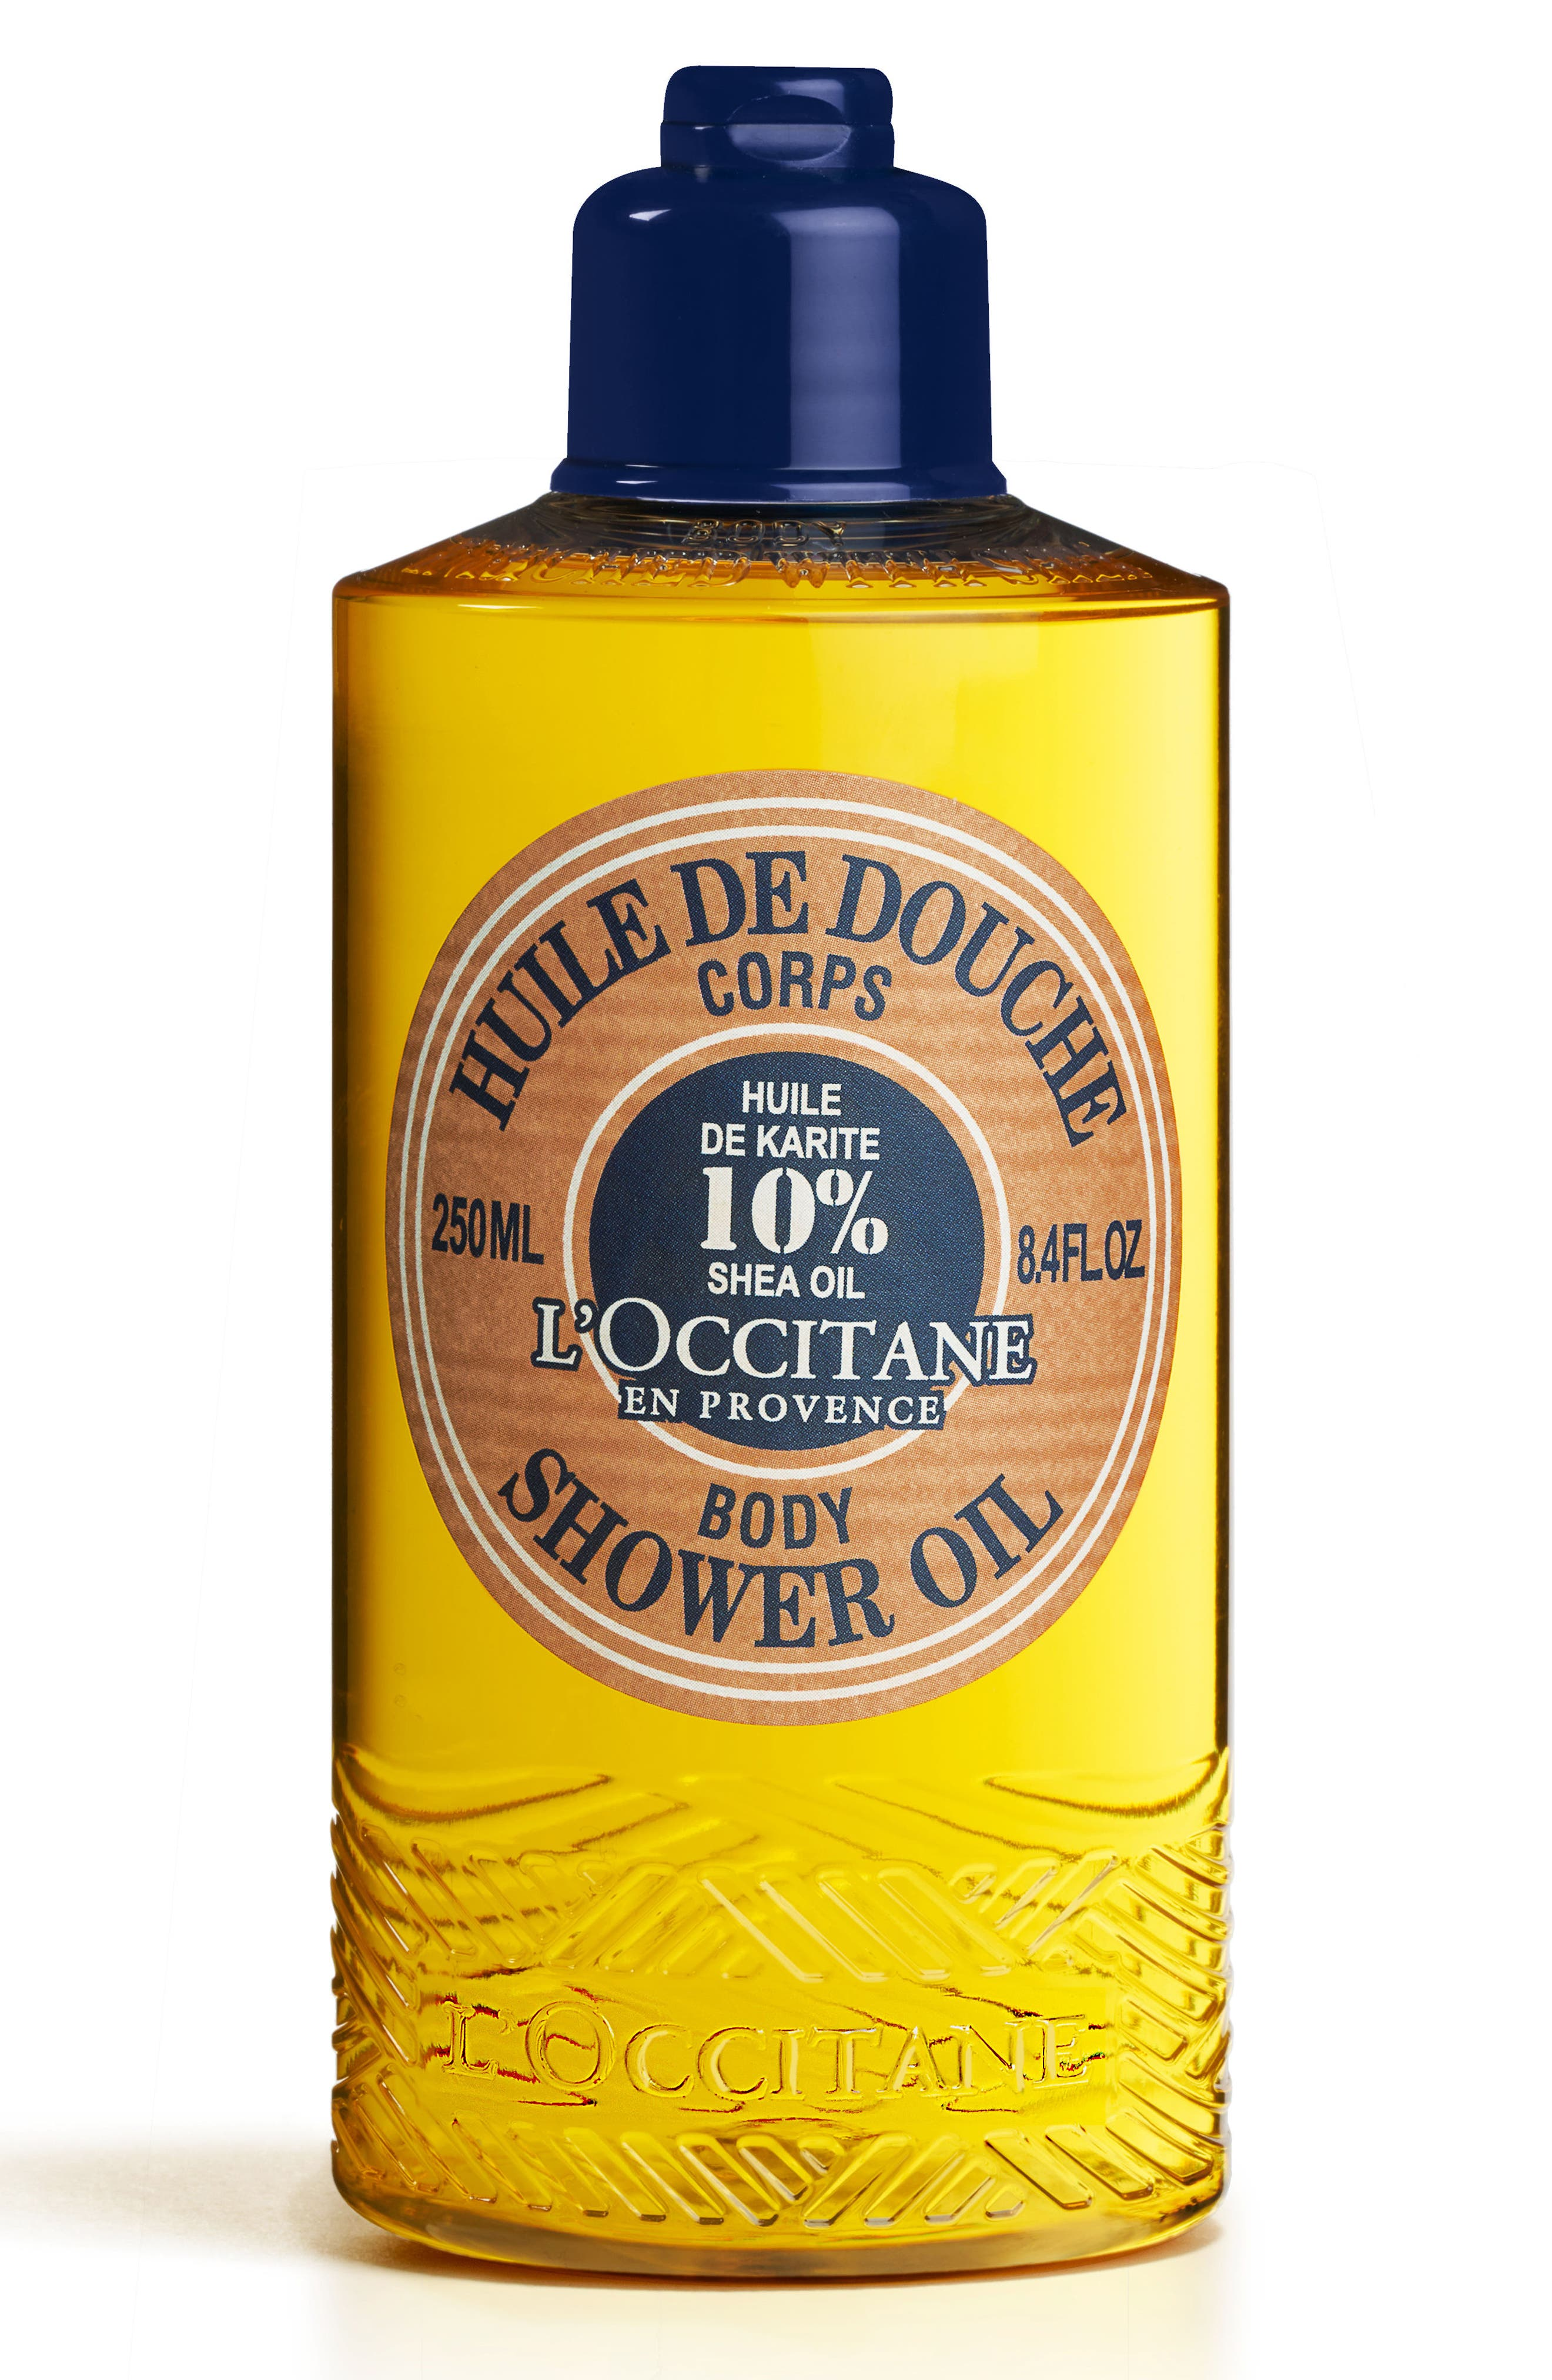 L'Occitane Shea Body Shower Oil